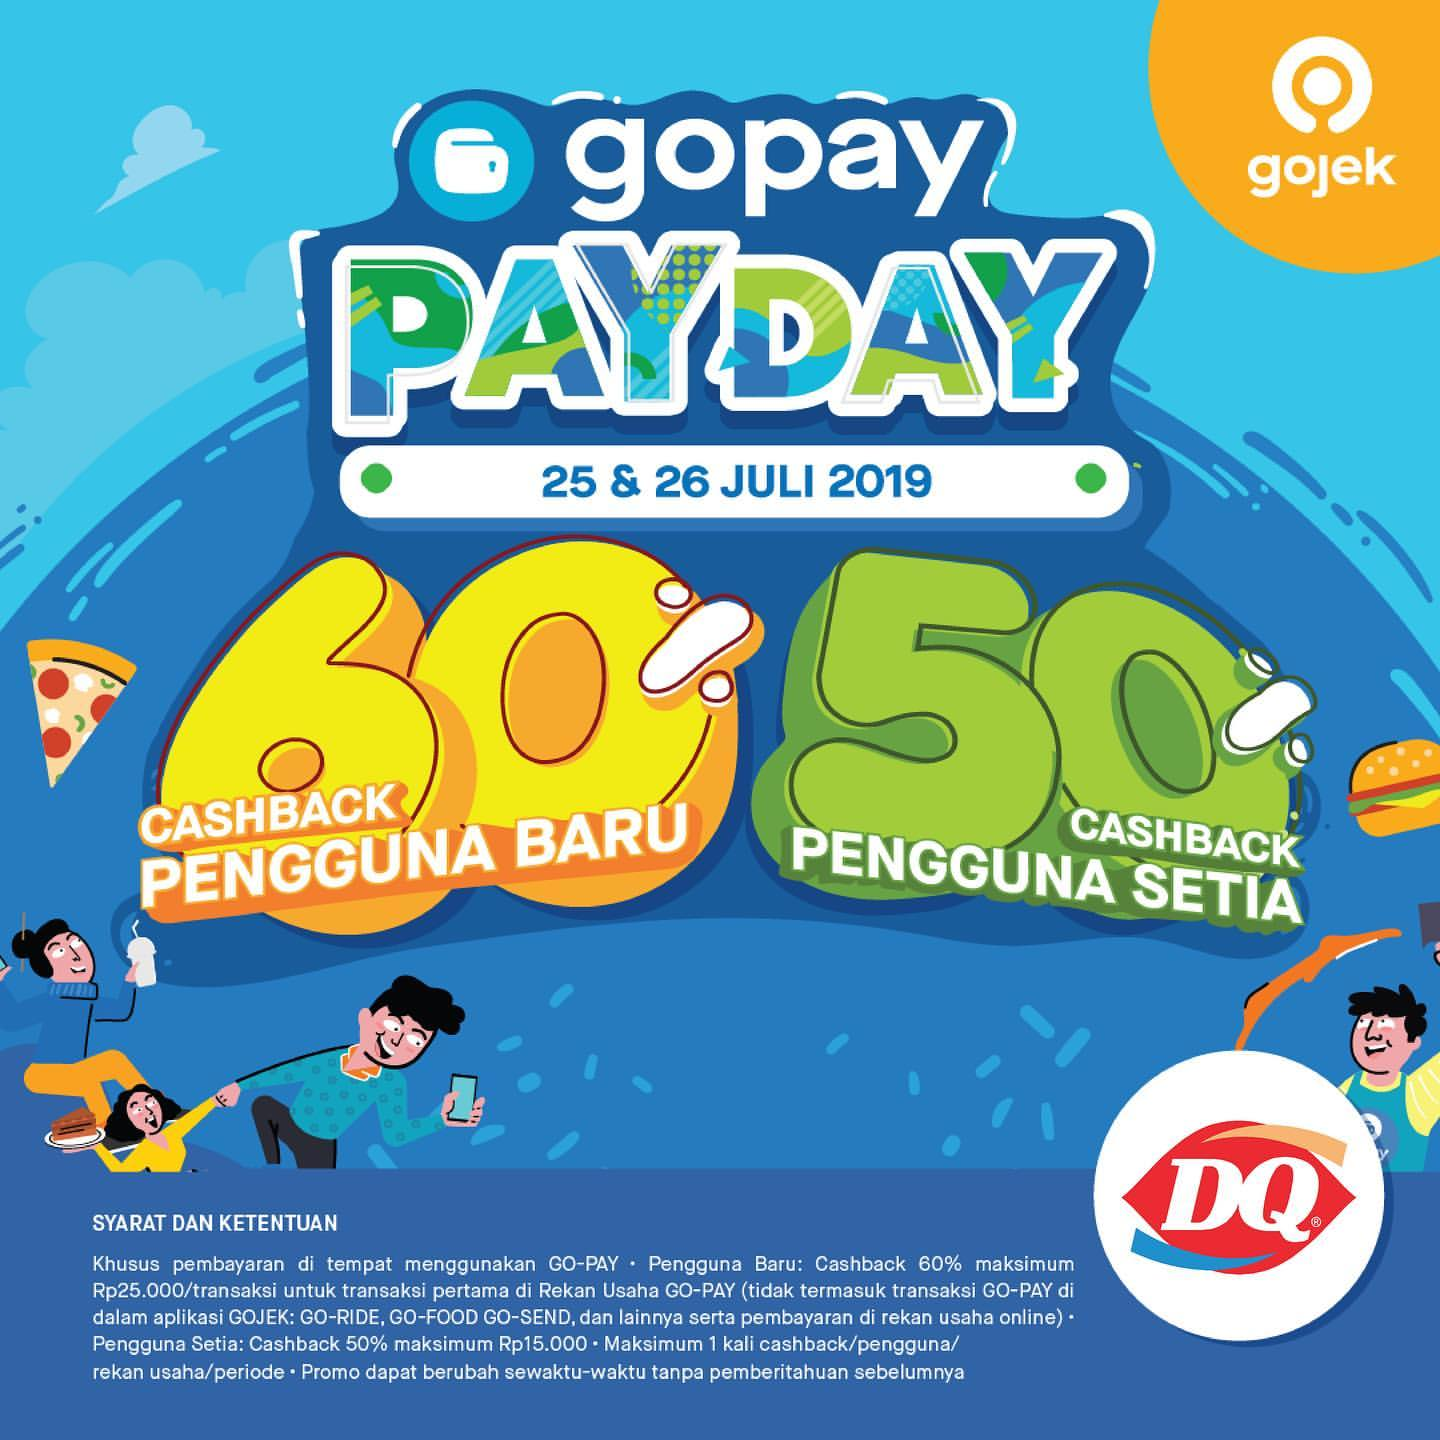 Diskon Dairy Queen Promo GOPAY PAYDAY, Cashback up to 60%!